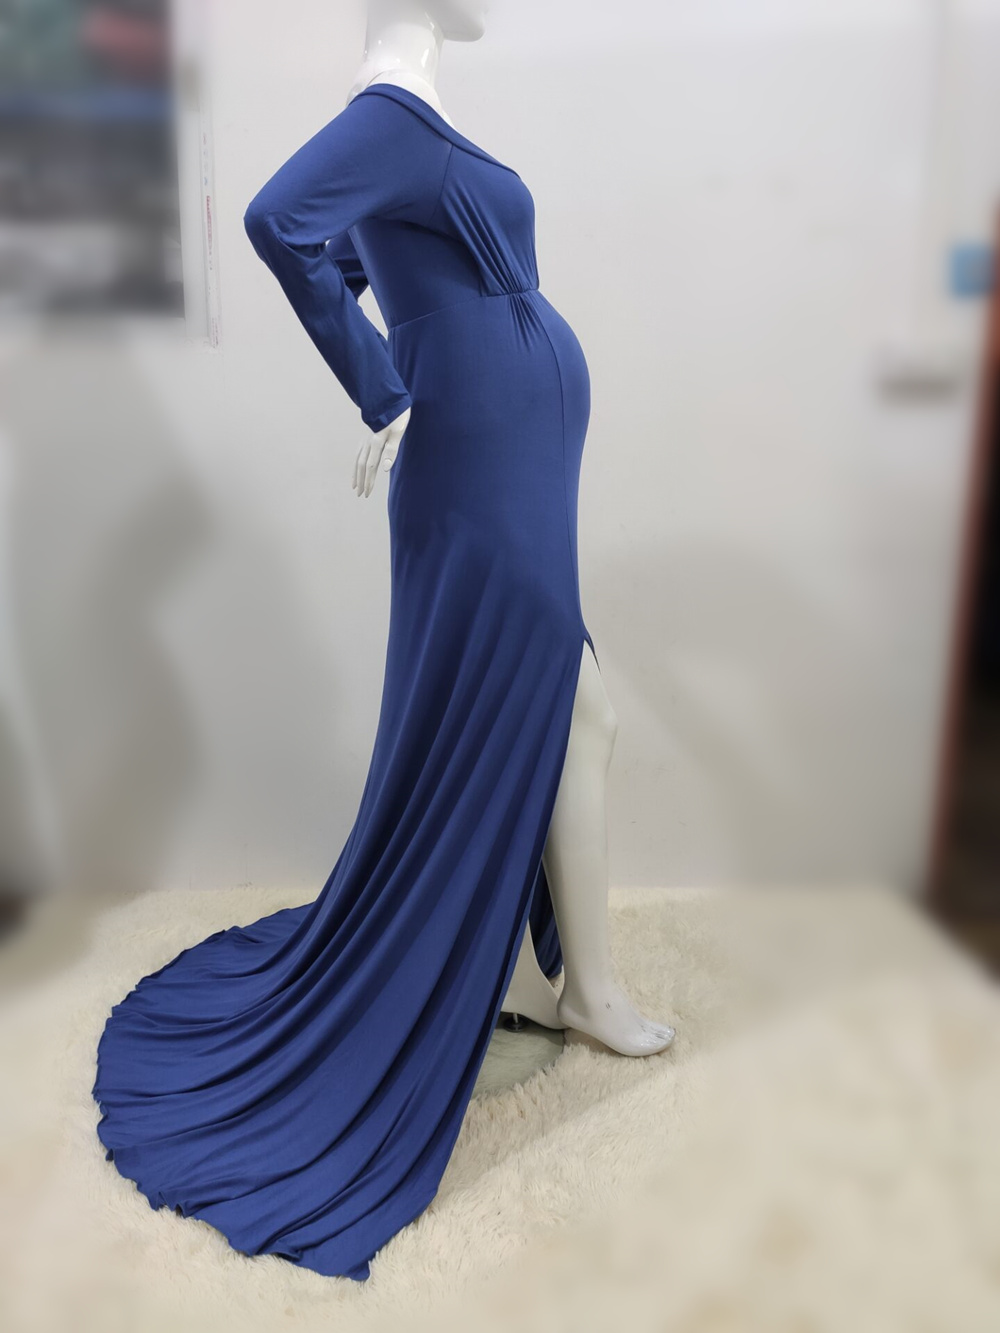 Sexy Shoulderless Maternity Dresses For Photo Shoot Maxi Gown Split Side Women Pregnant Photography Props Long Pregnancy Dress (26)